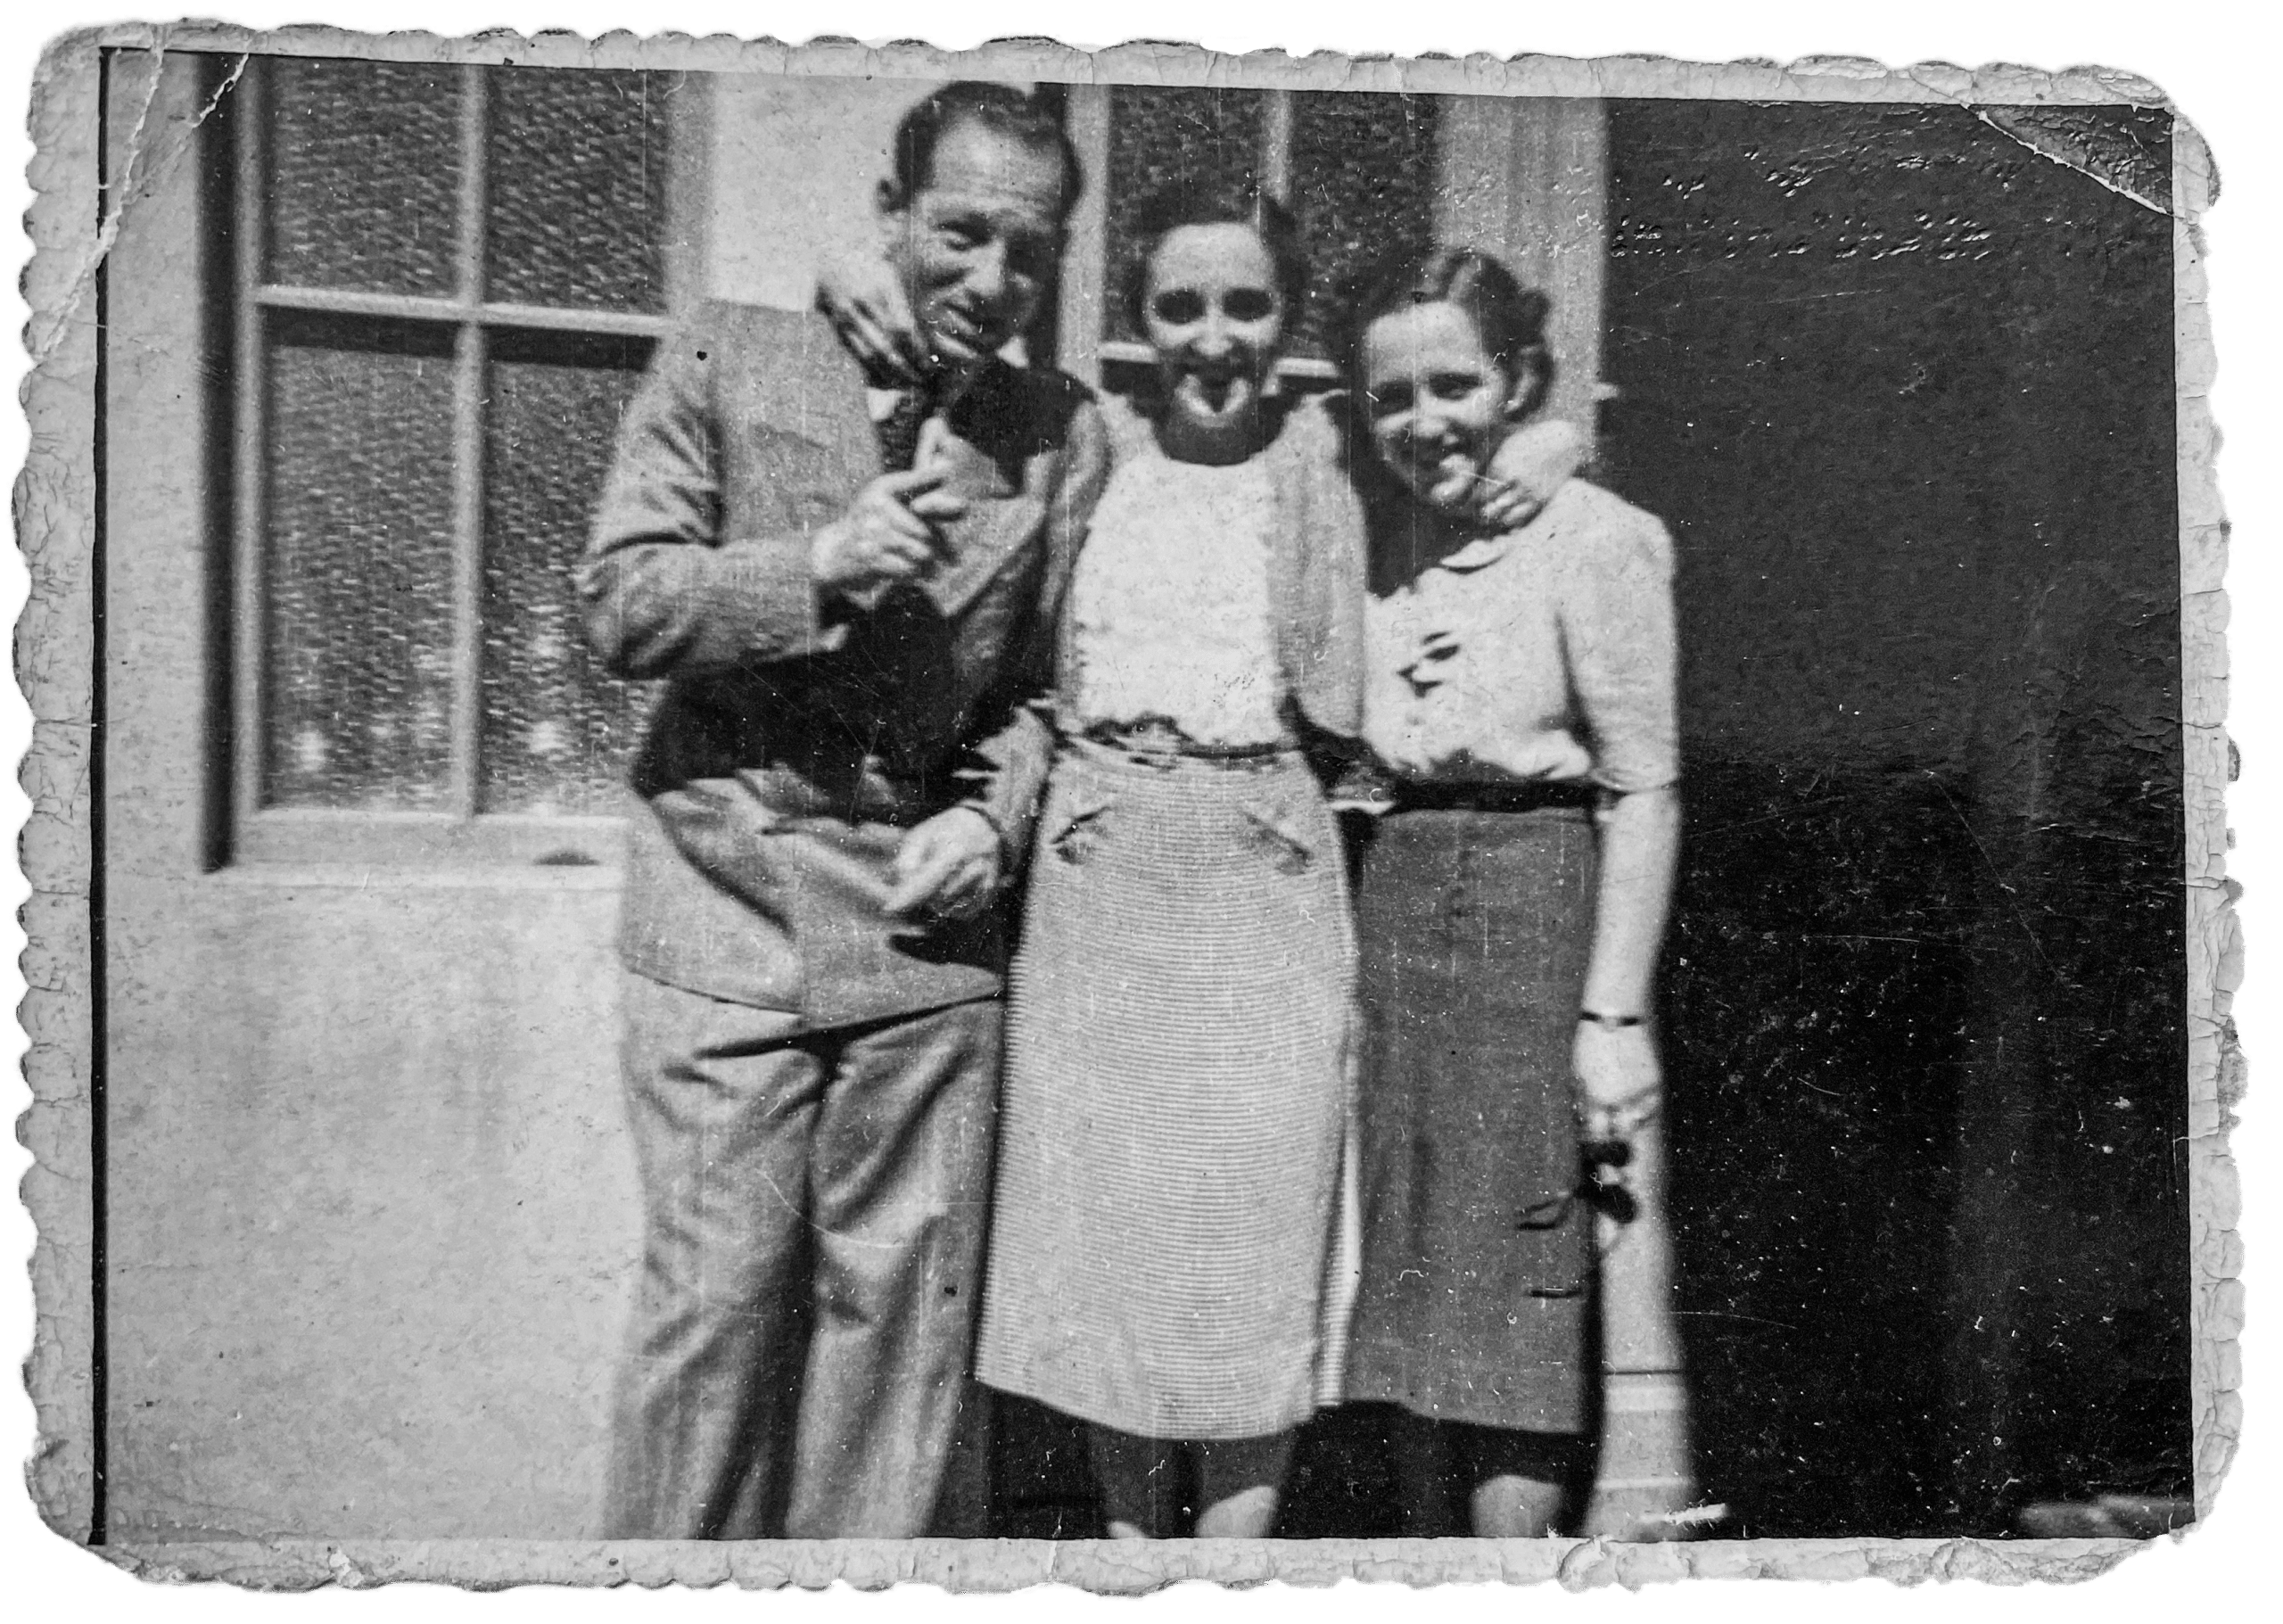 Left to right: Gustave, Magda, and Aranka Riederman, May 1938